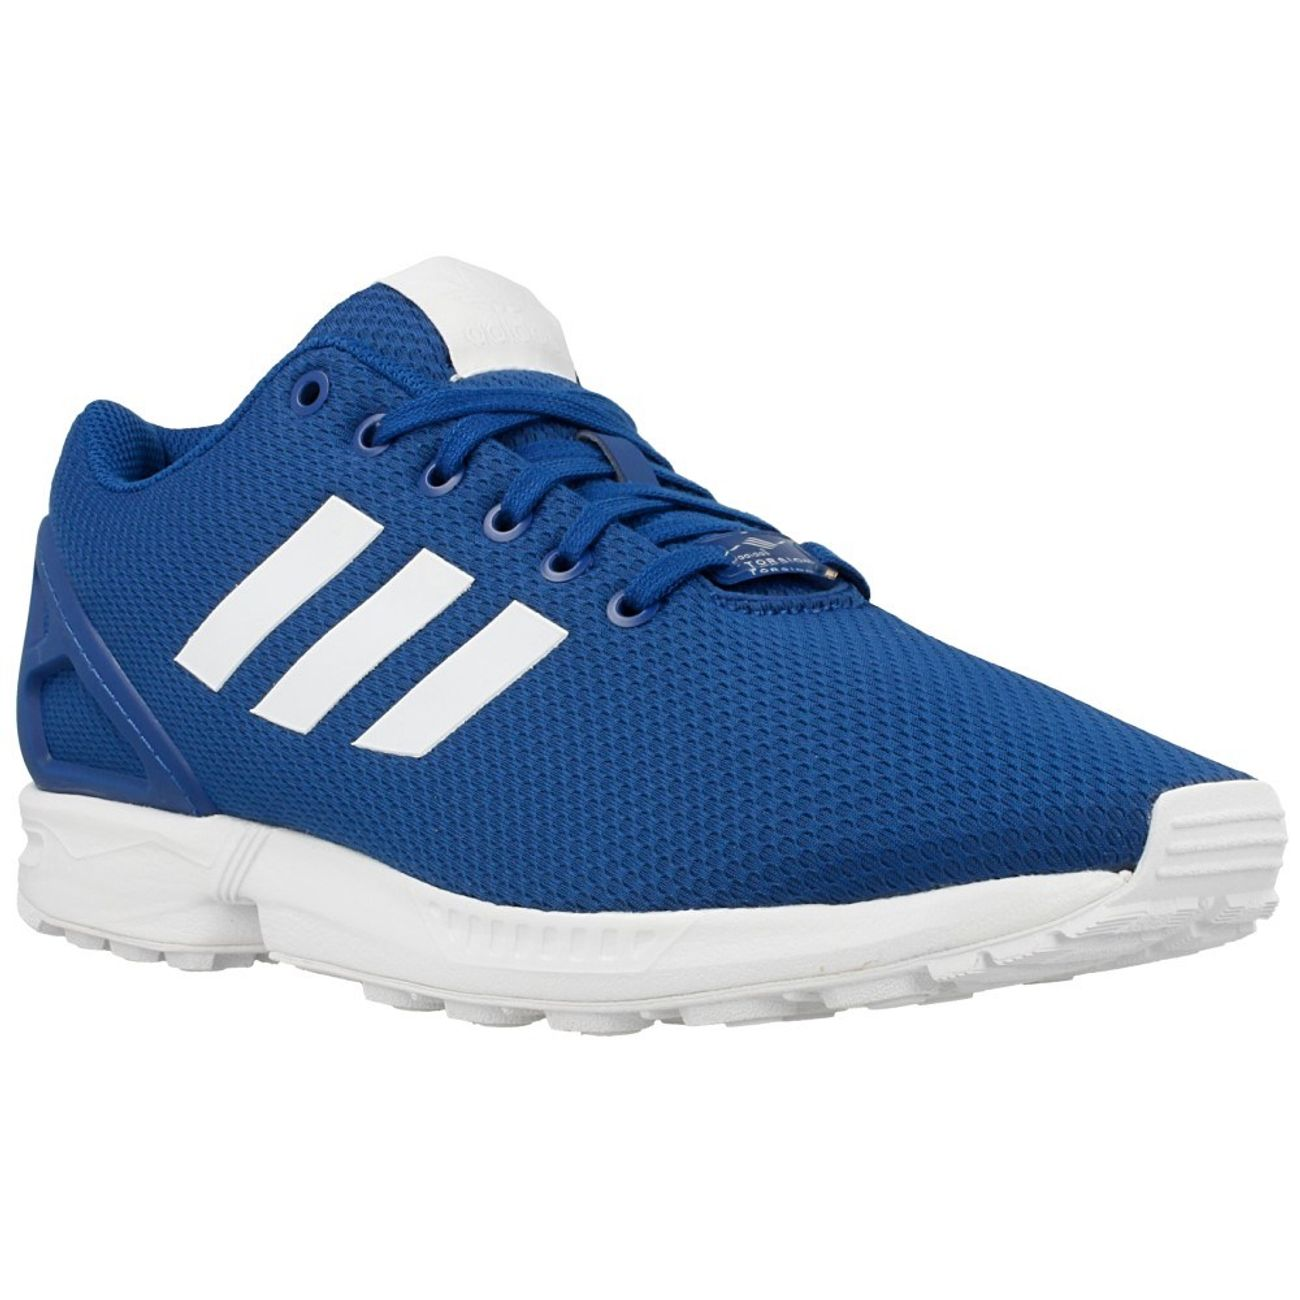 Mode- Lifestyle homme ADIDAS Adidas ZX Flux